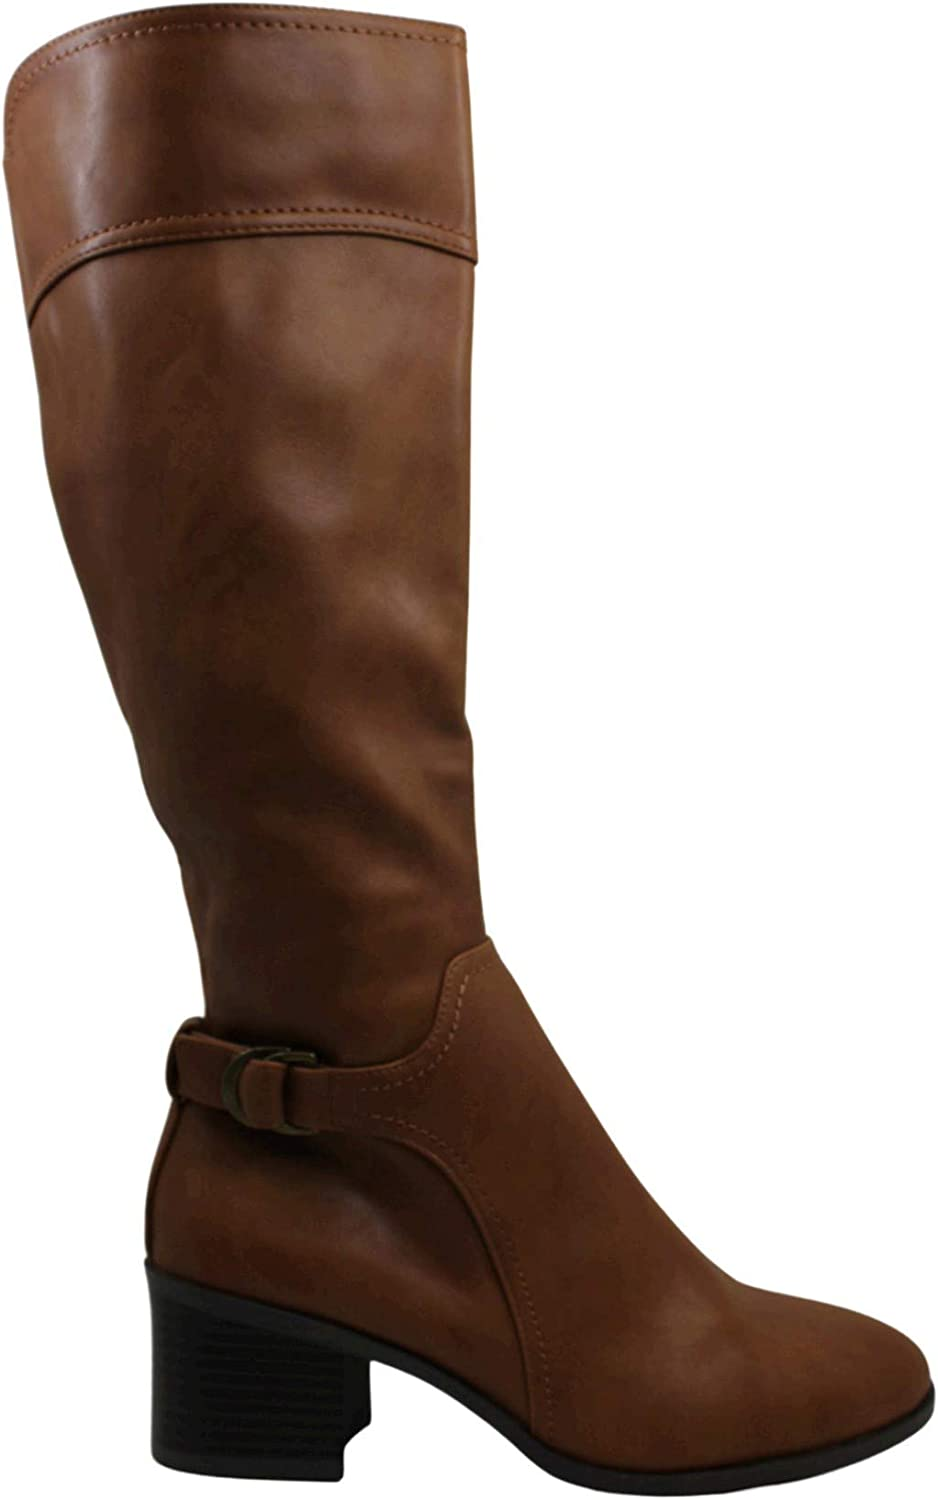 Style & Co. Womens Vannie Closed Toe Mid-Calf Riding Boots